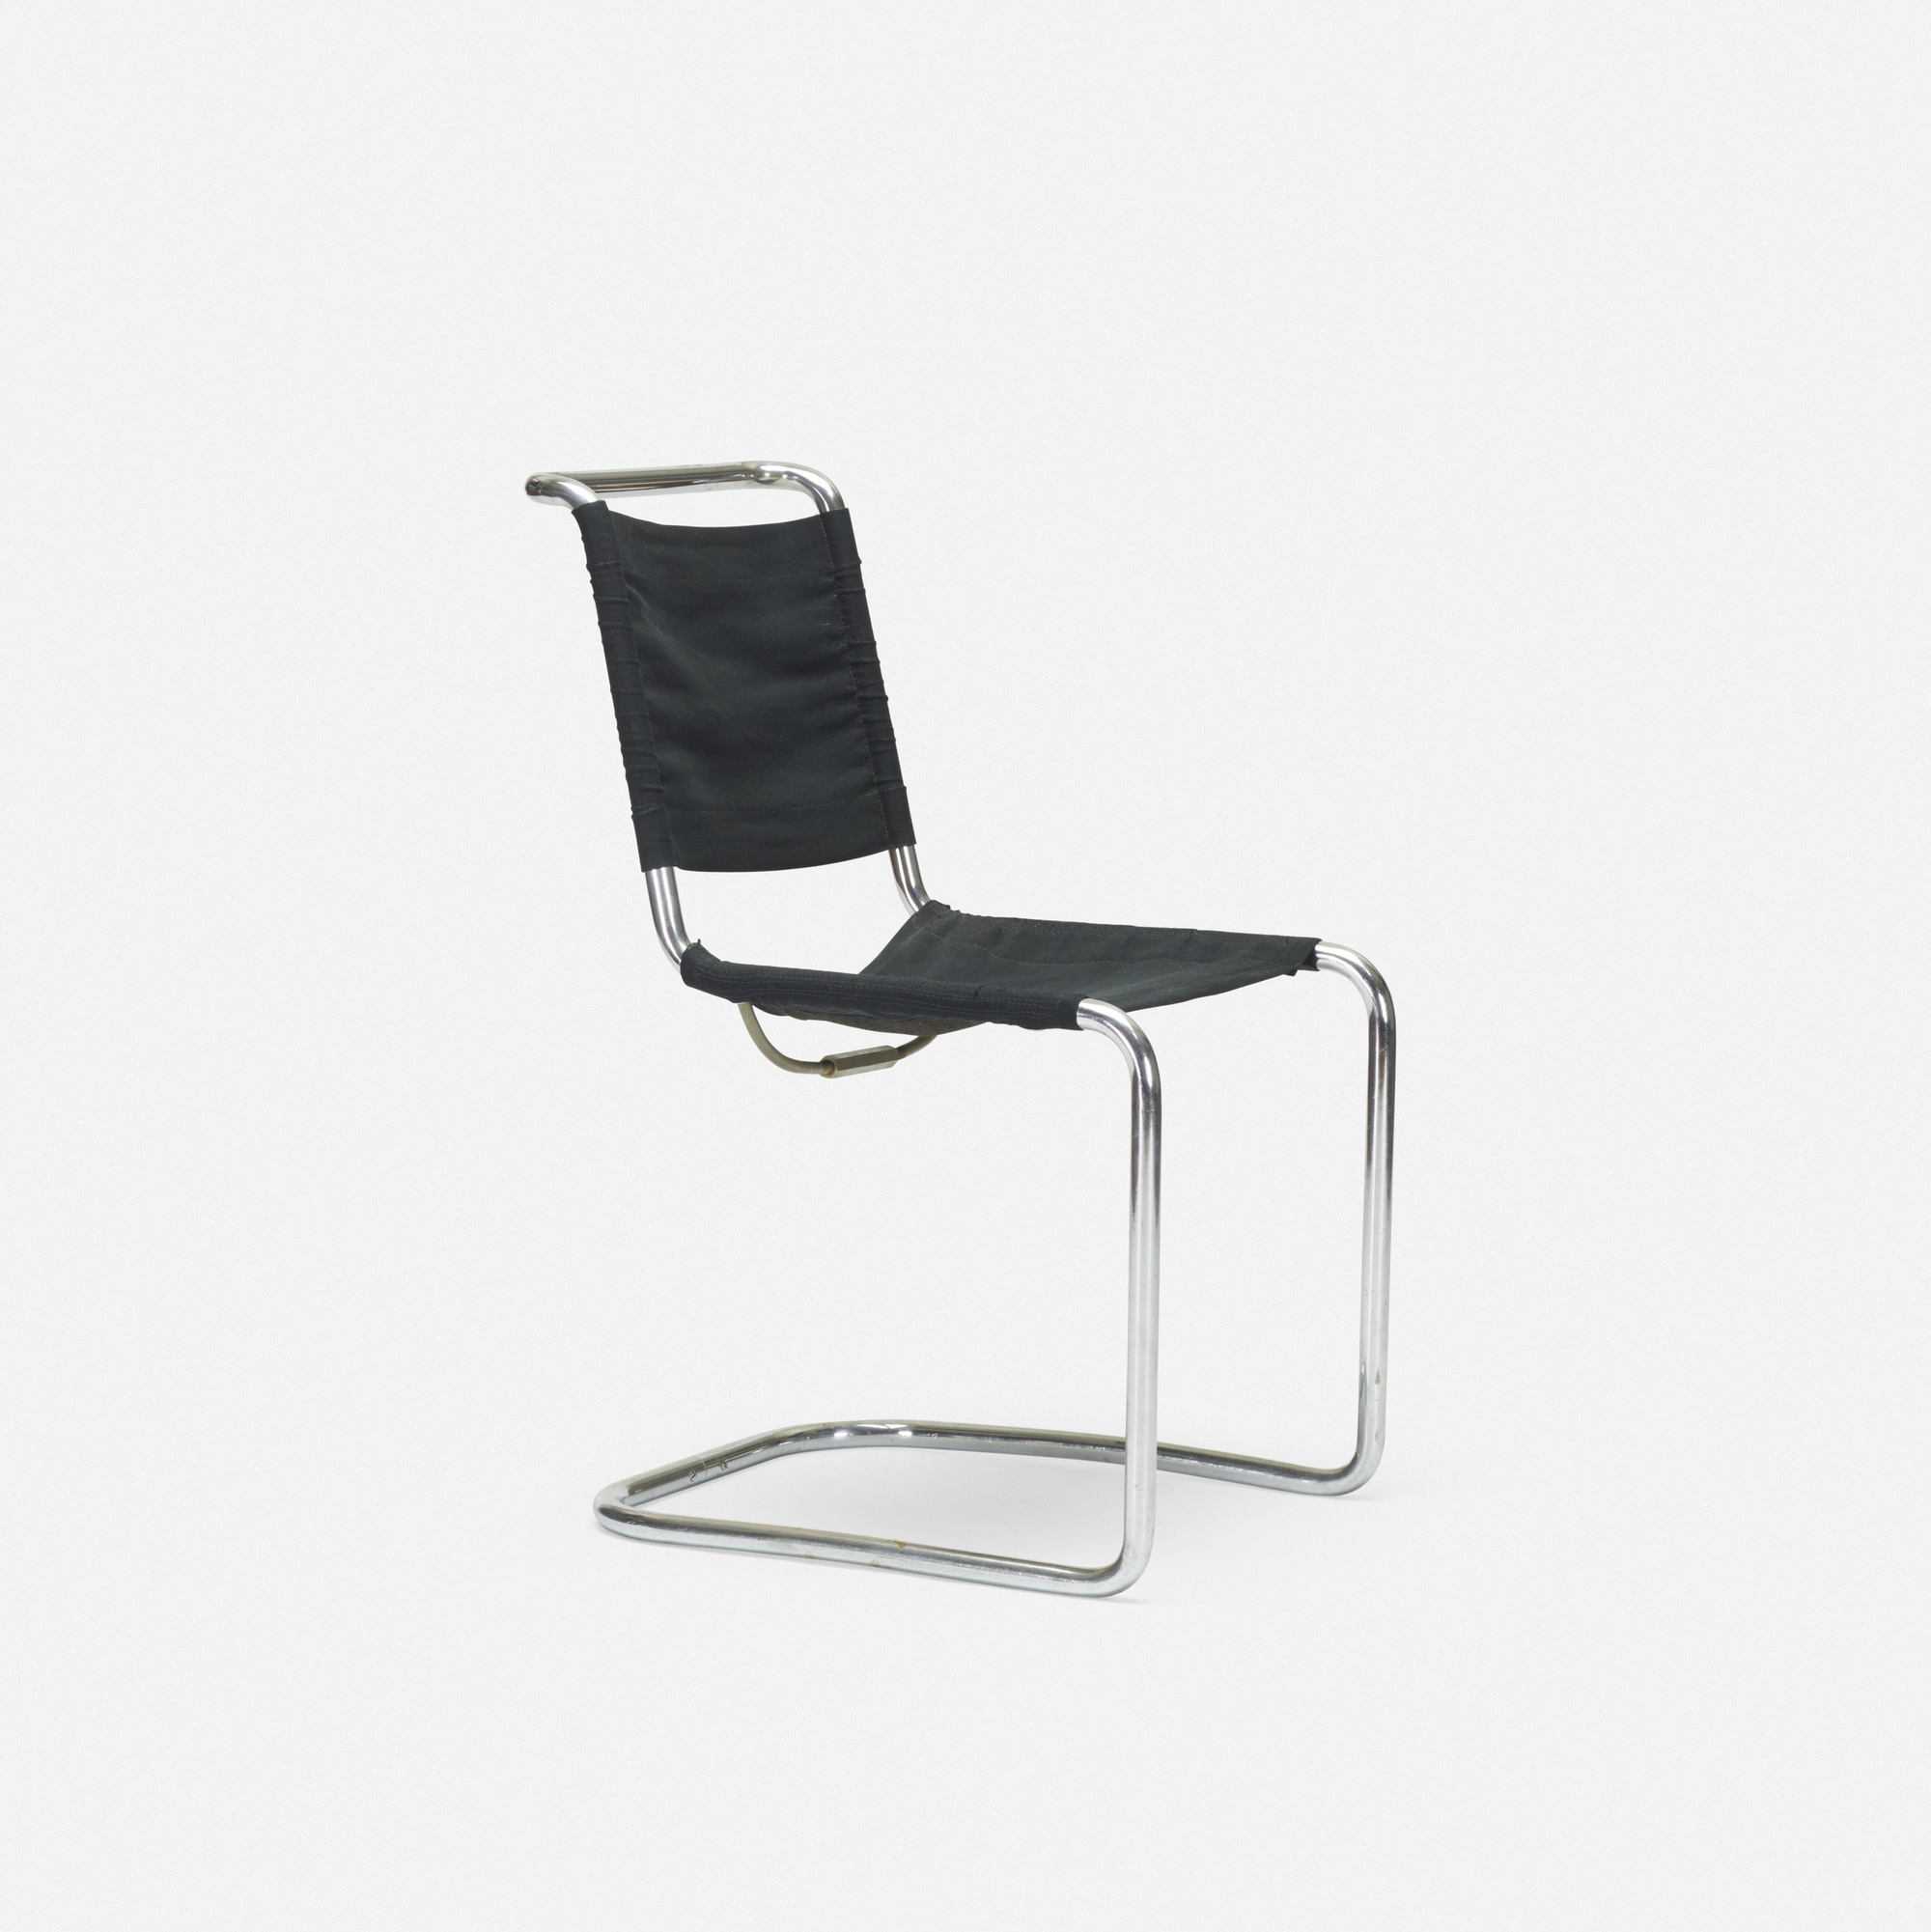 183 Marcel Breuer B33 side chair Mass Modern Day 1 10 August